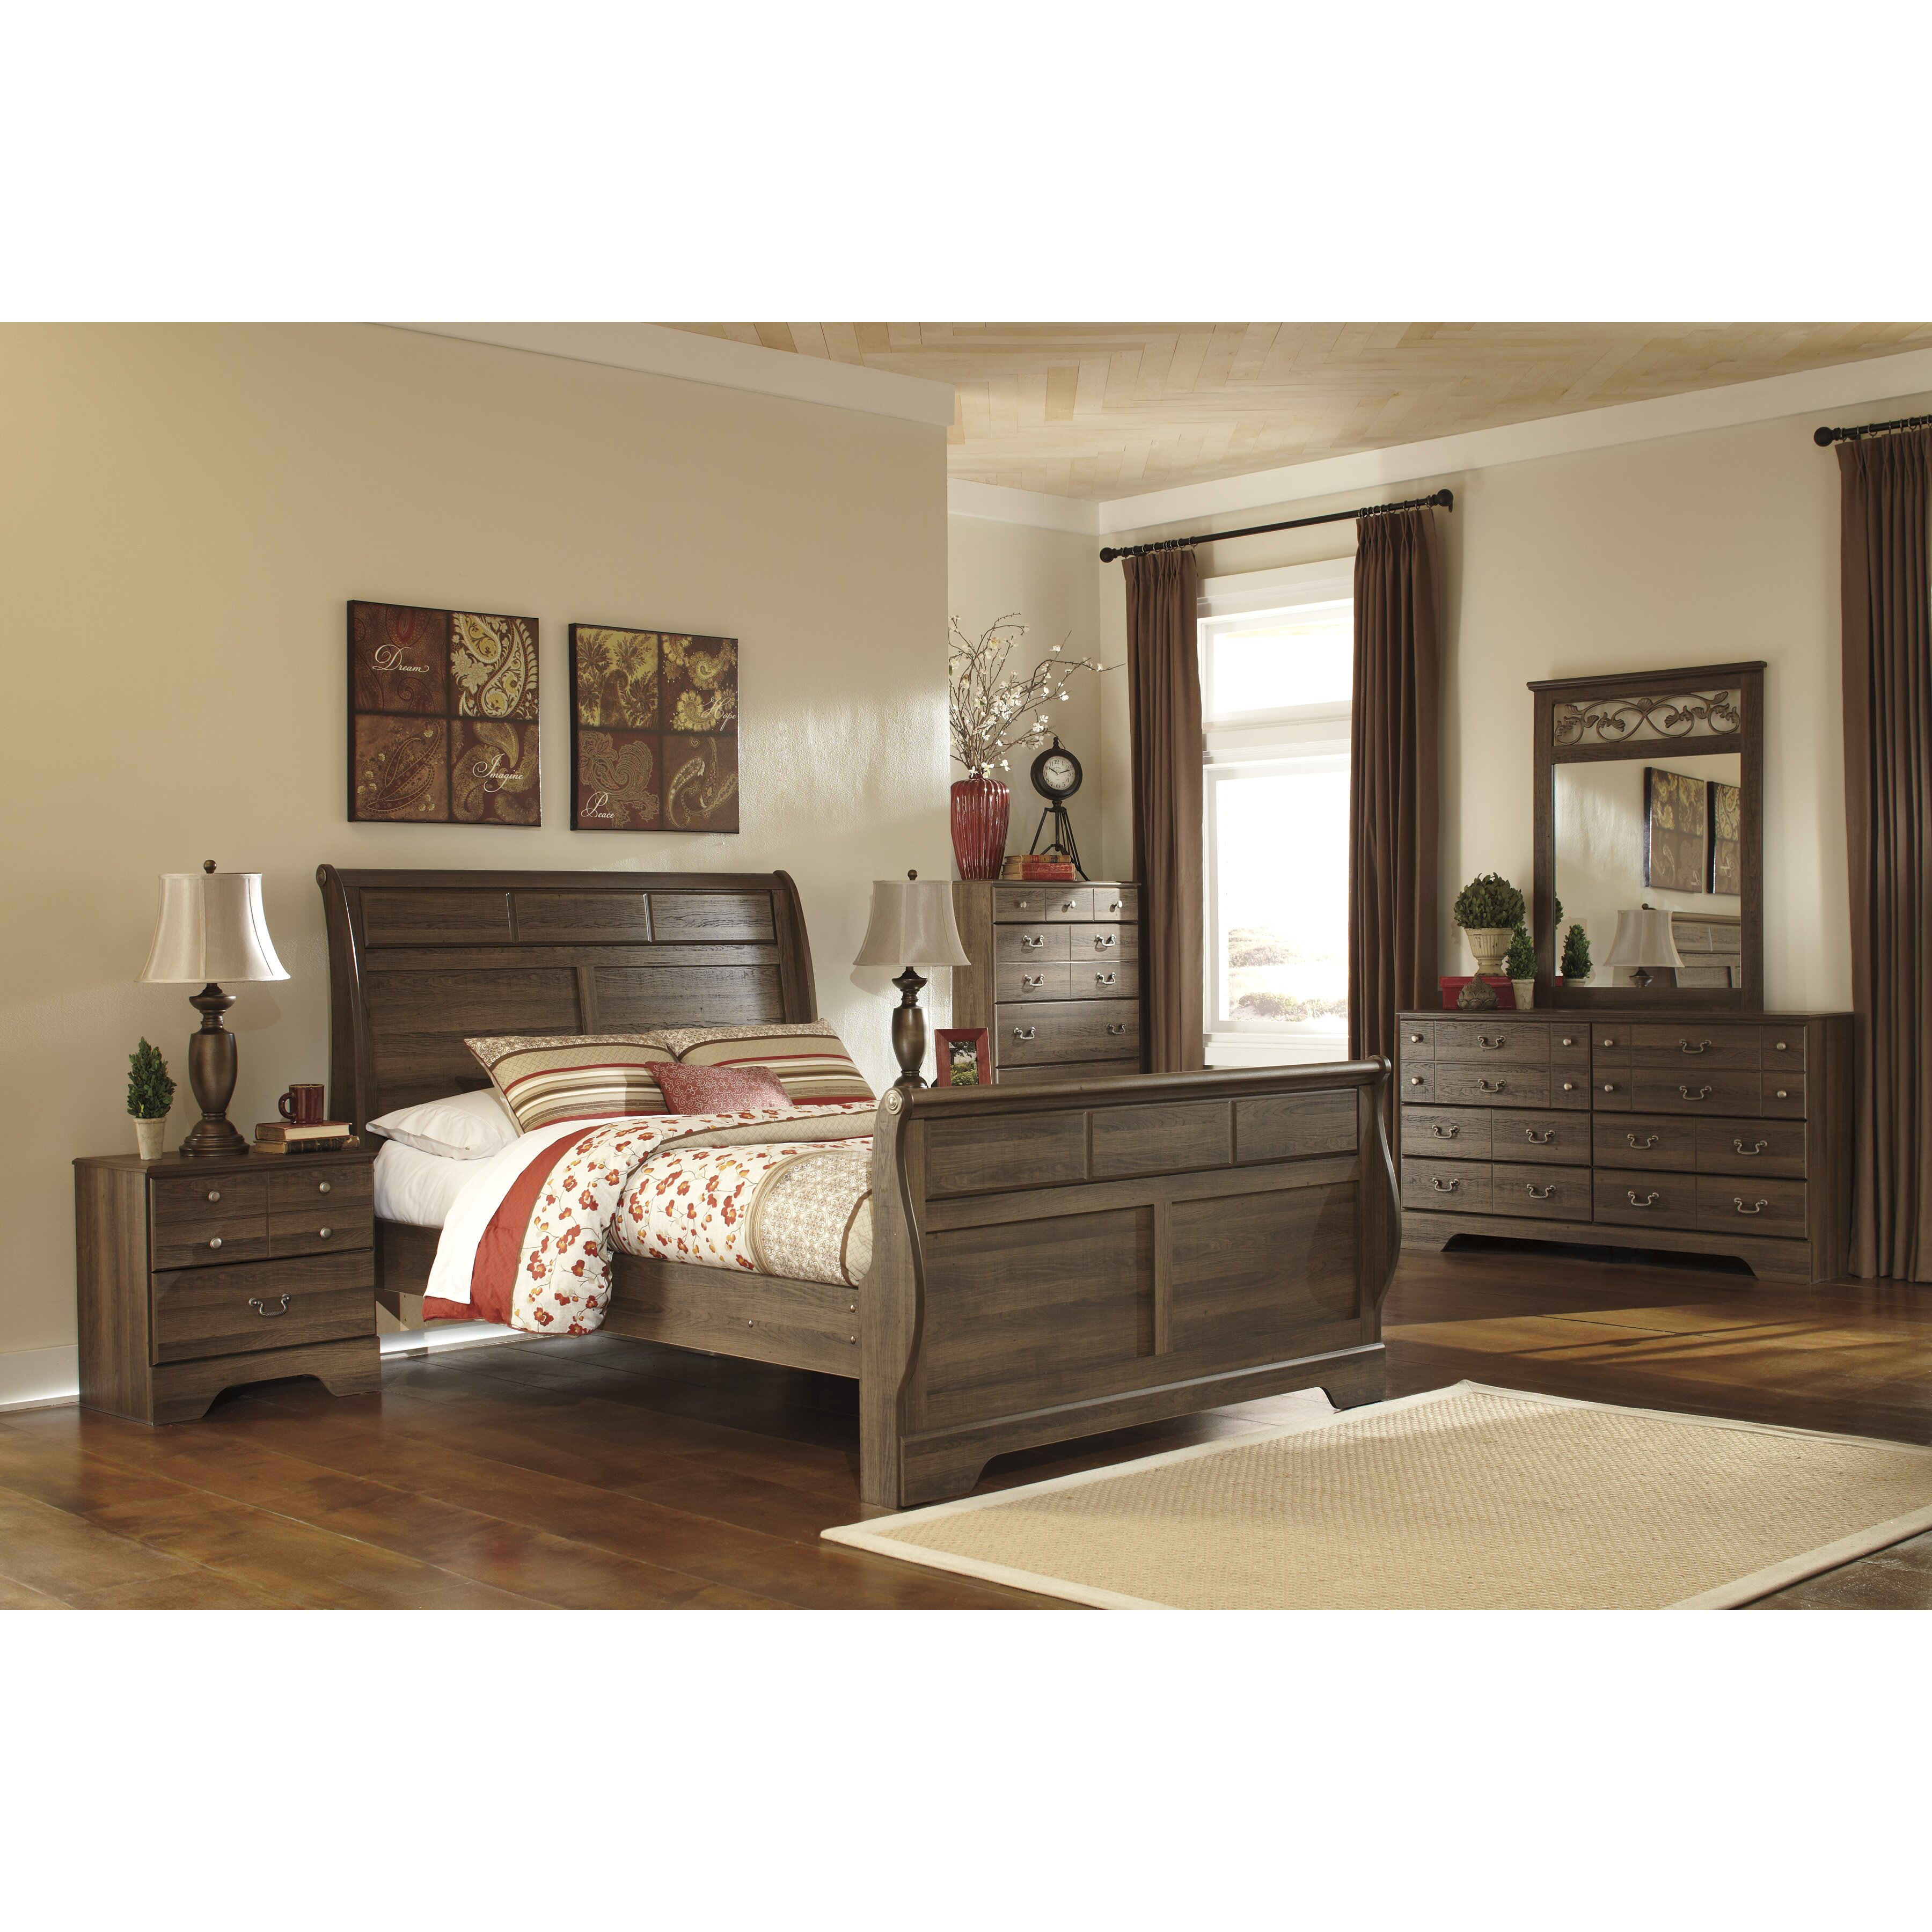 Signature design by ashley allymore 5 drawer chest - Ashley furniture sleigh bedroom set ...